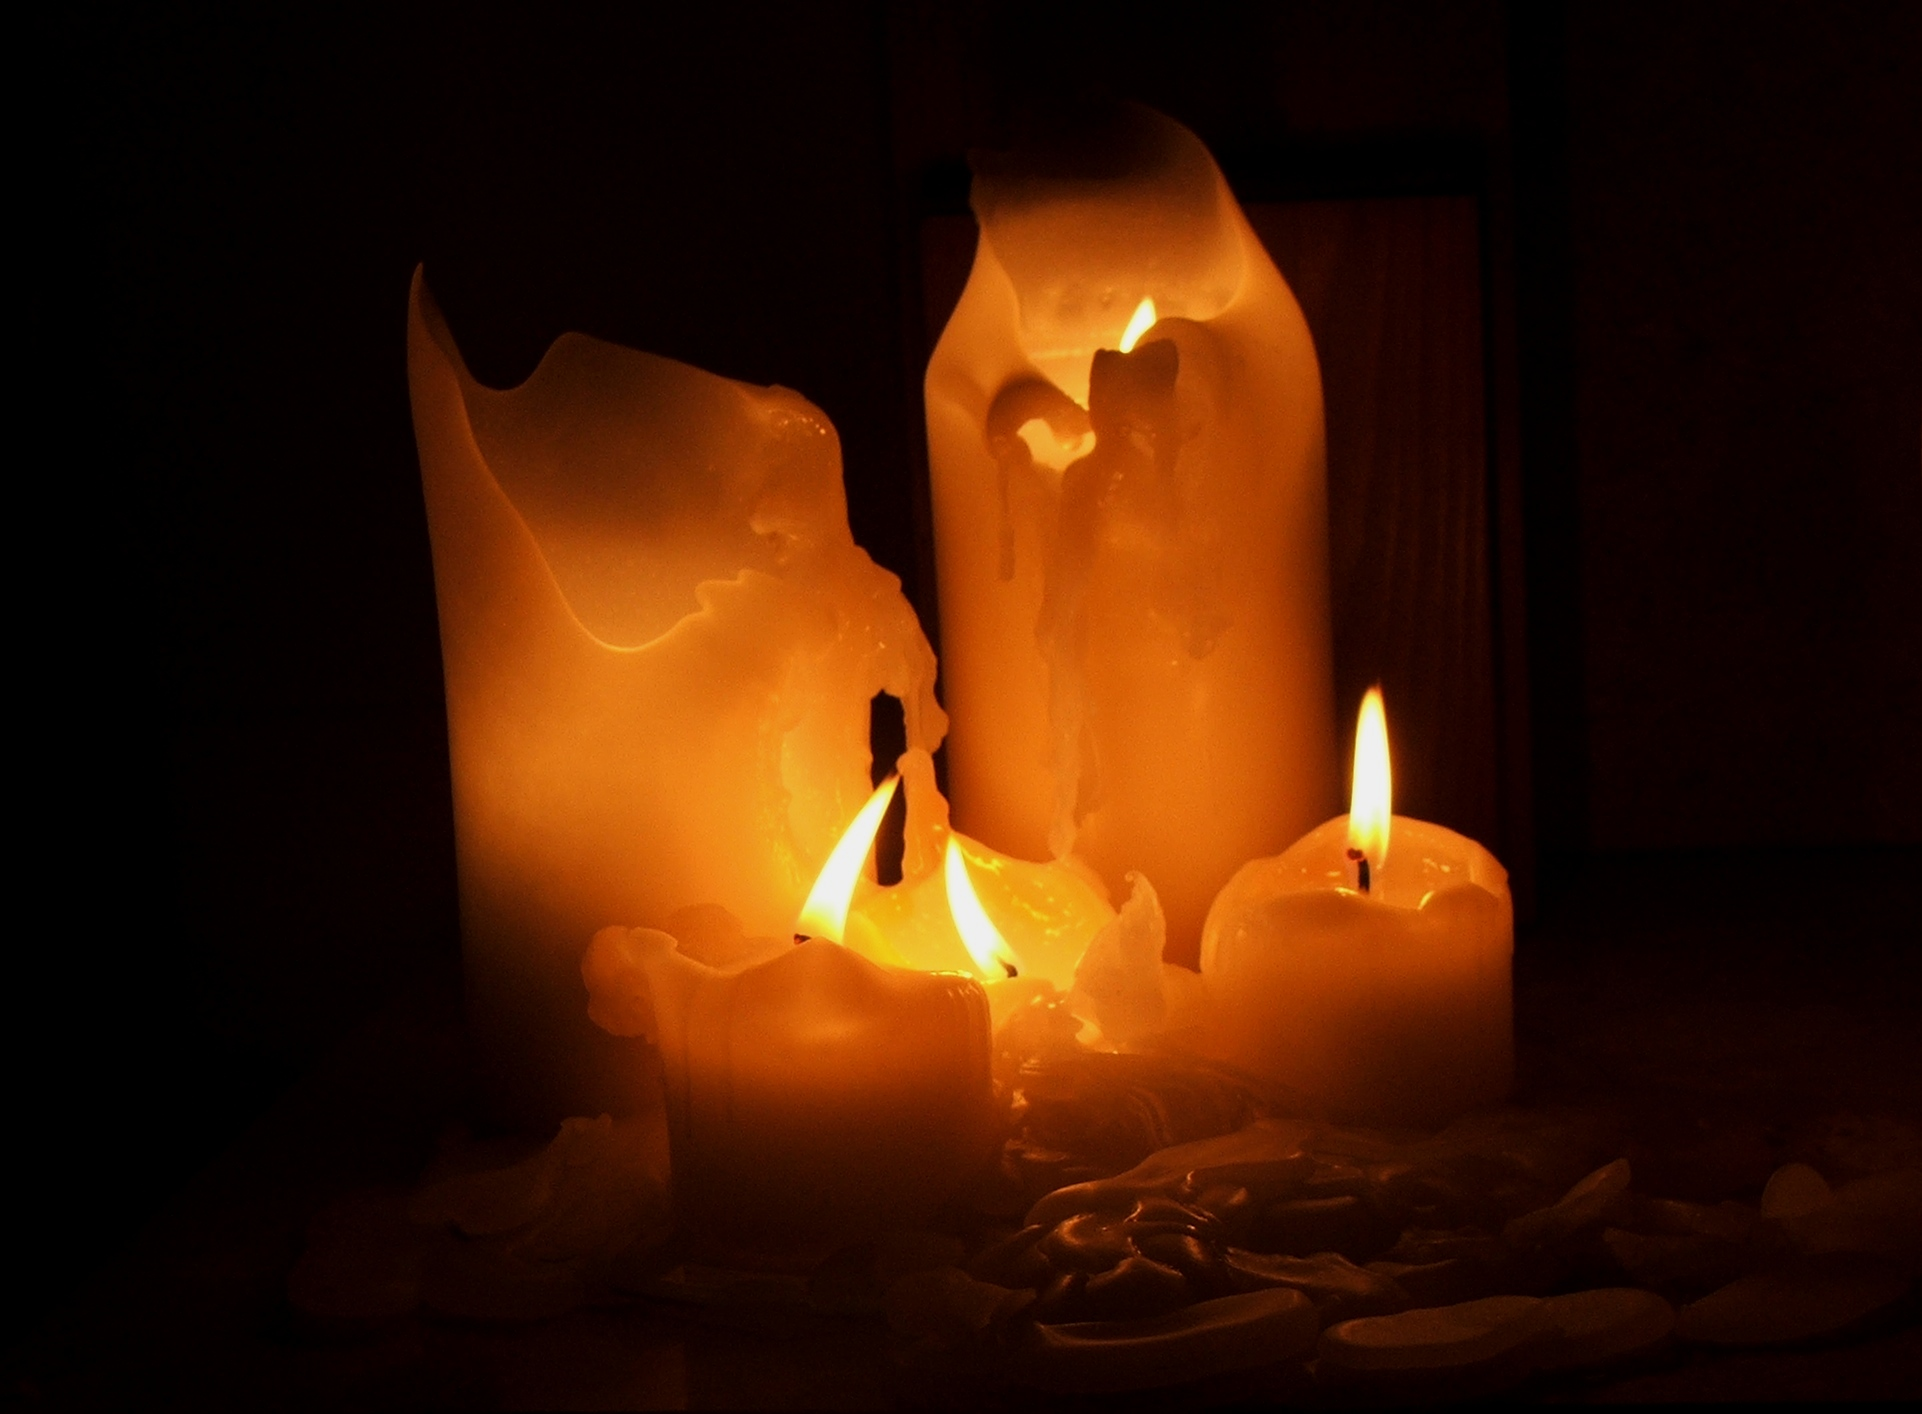 Amazing Melting Candle Pictures & Backgrounds